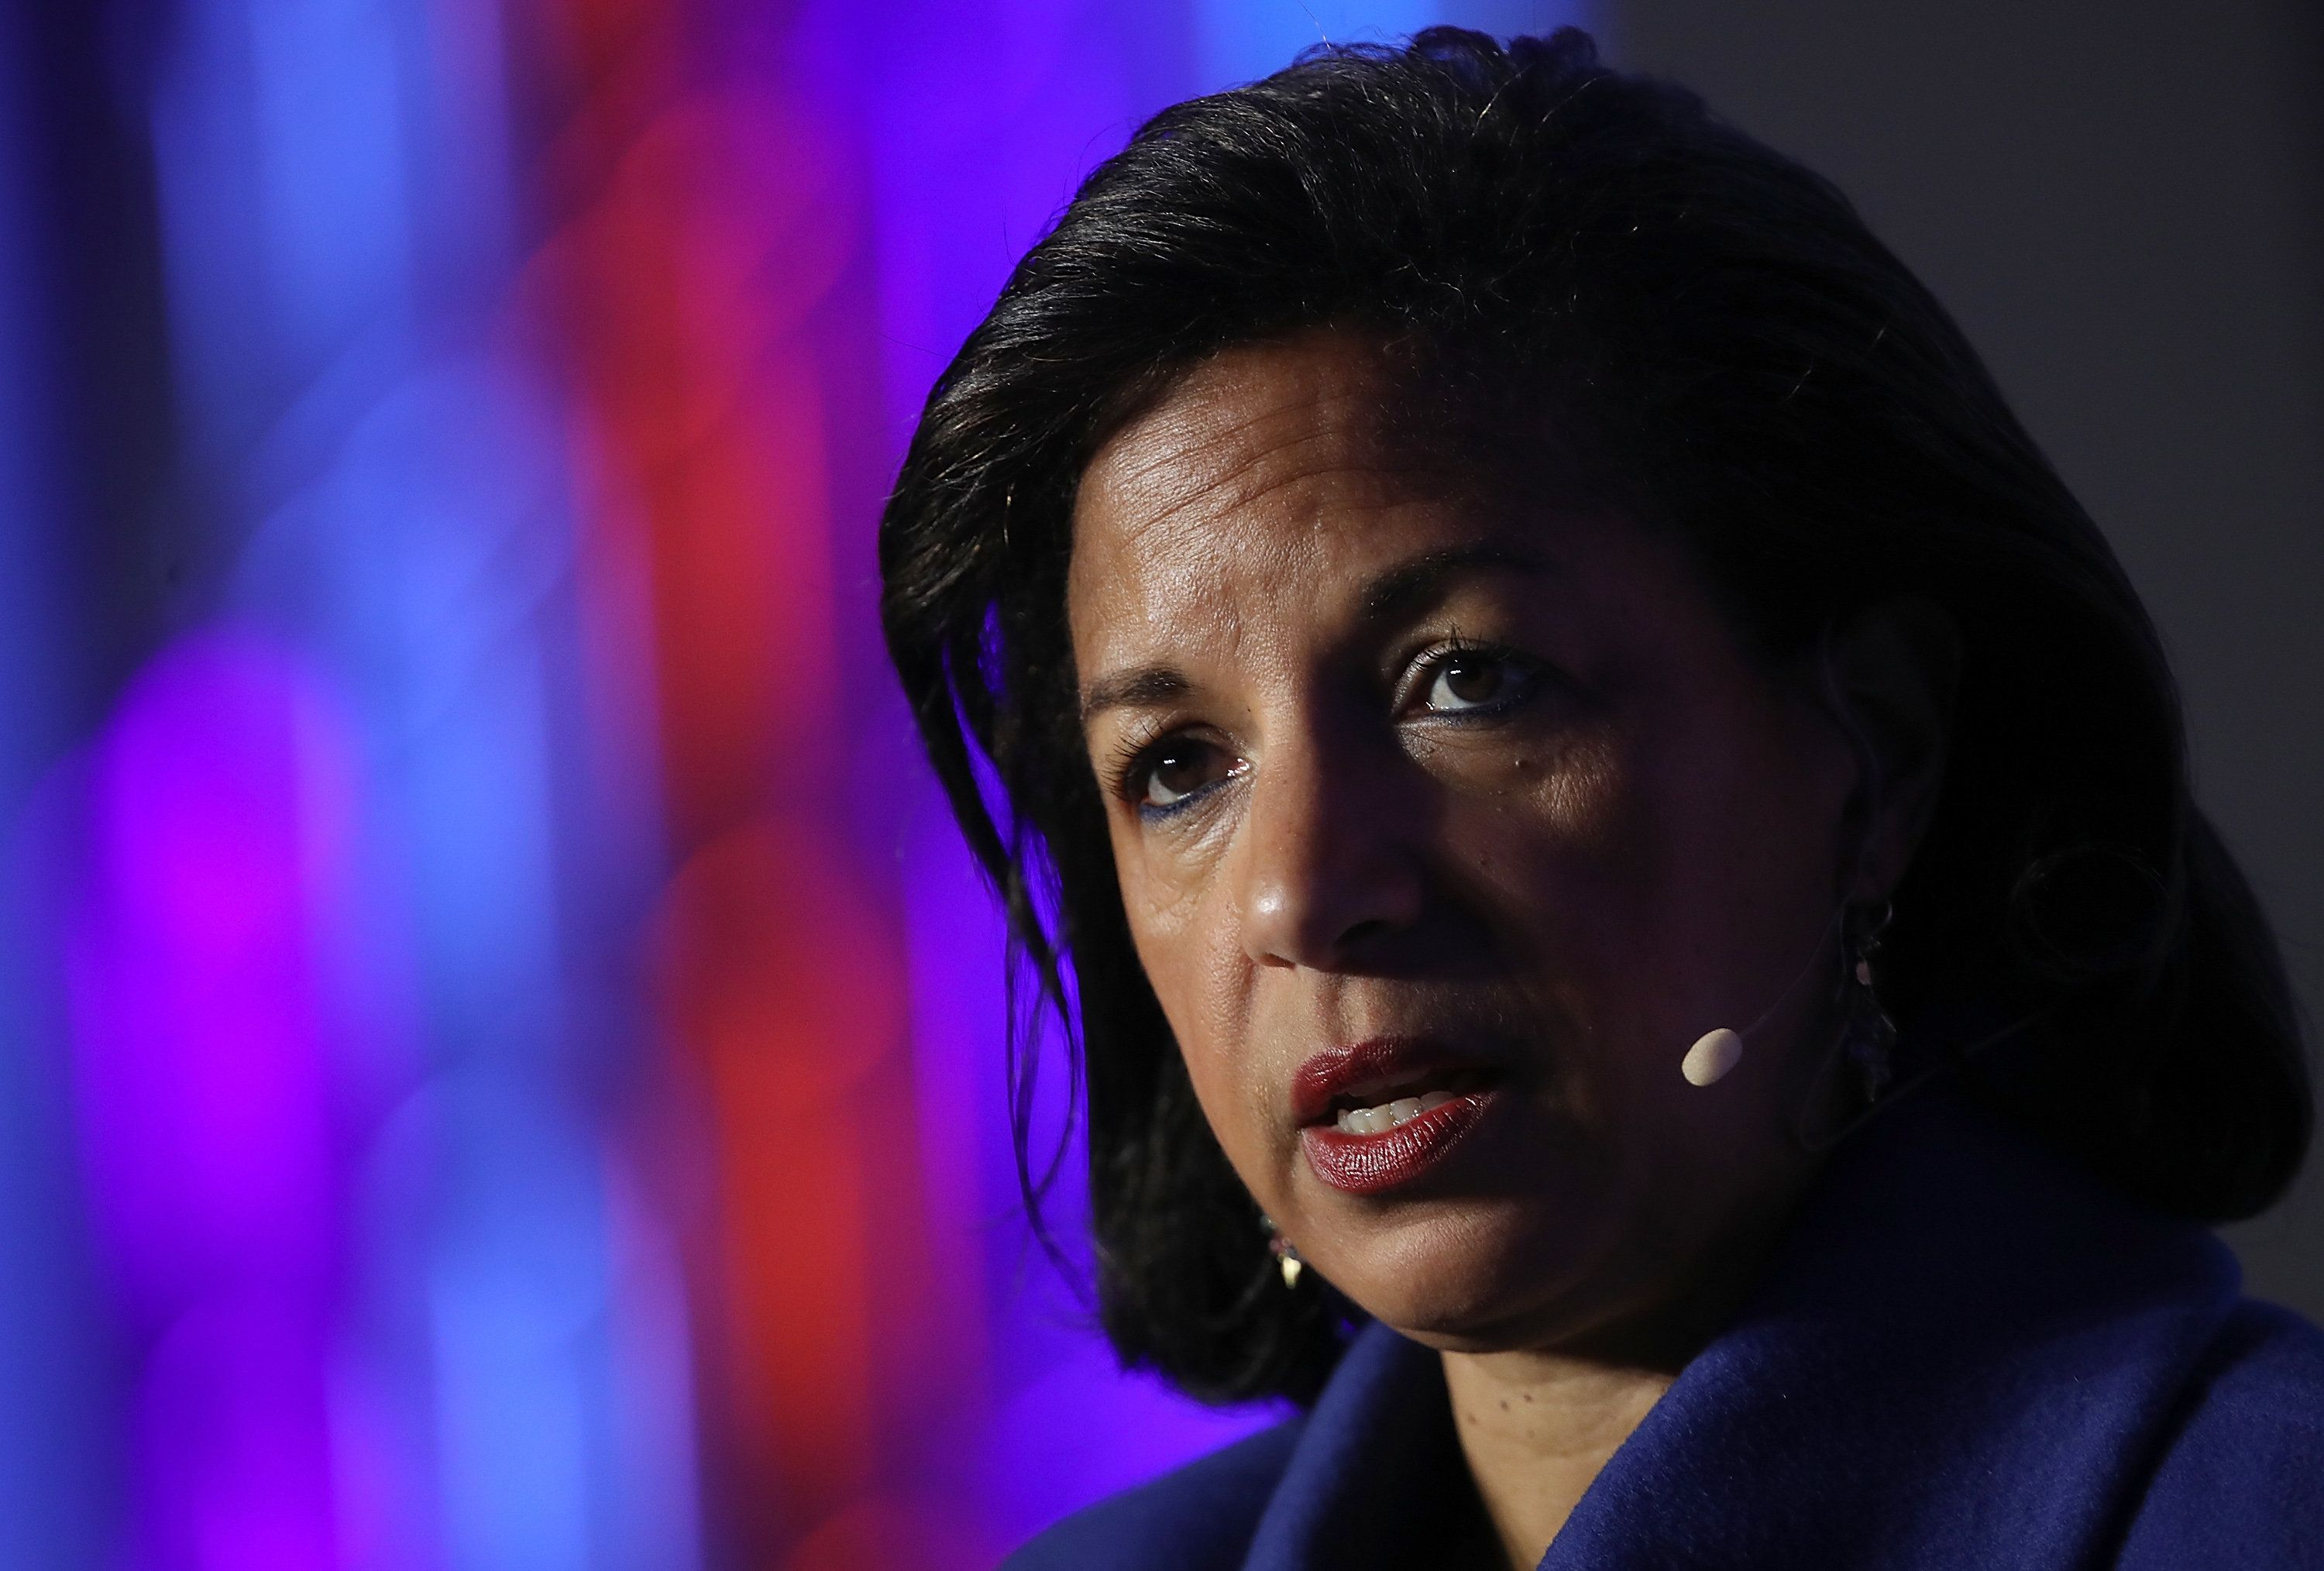 WASHINGTON, DC - APRIL 16:  Former National Security Advisor Susan Rice speaks at the J Street 2018 National Conference April 16, 2018 in Washington, DC. Rice spoke on the topic of 'The Dangers of U.S. Foreign Policy Under Trump'.  (Photo by Win McNamee/Getty Images)